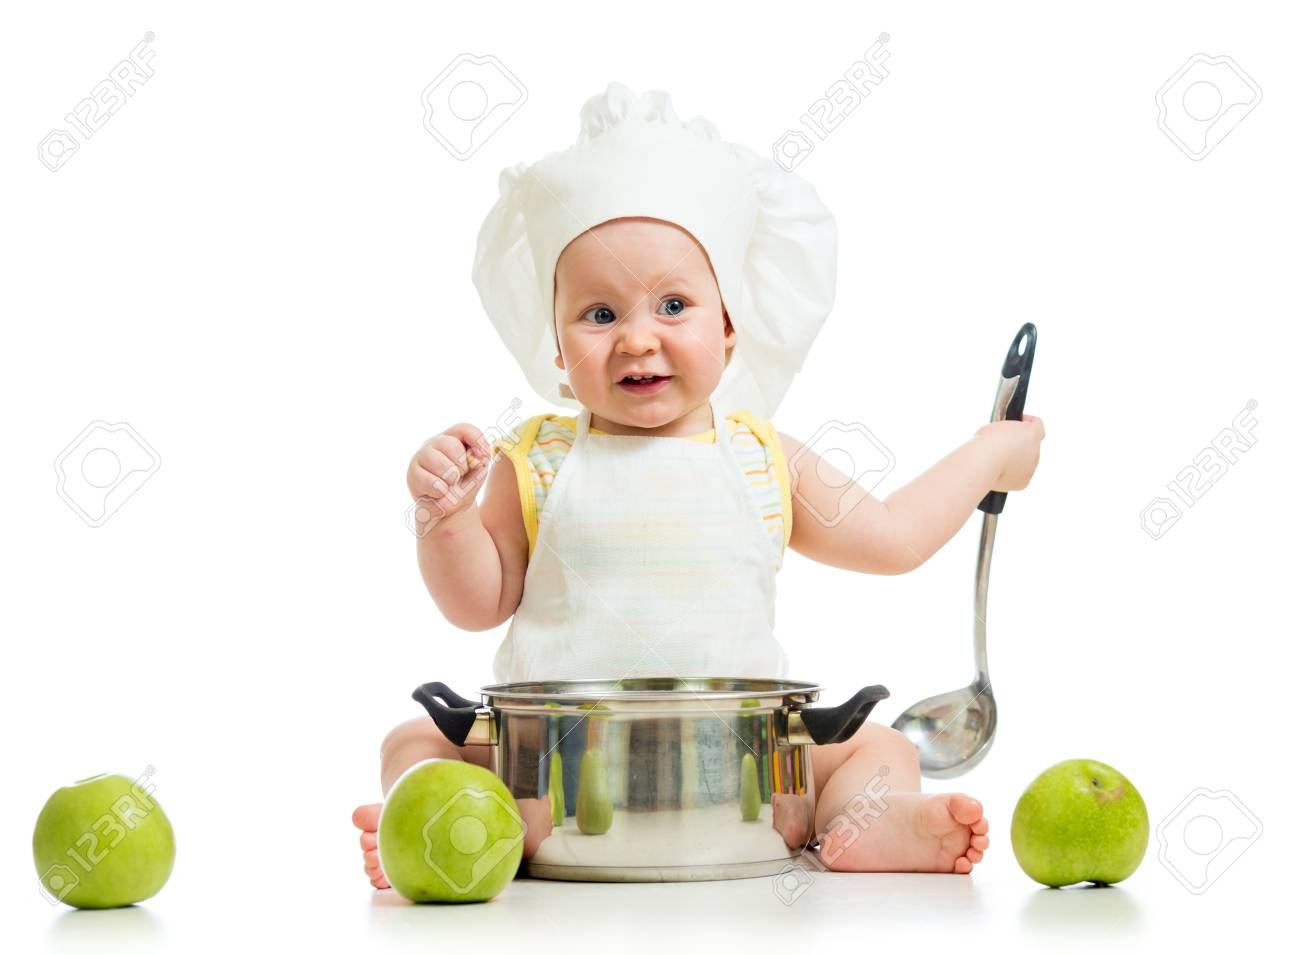 funny adorable baby with green apples isolated on white background Stock Photo - 17499571